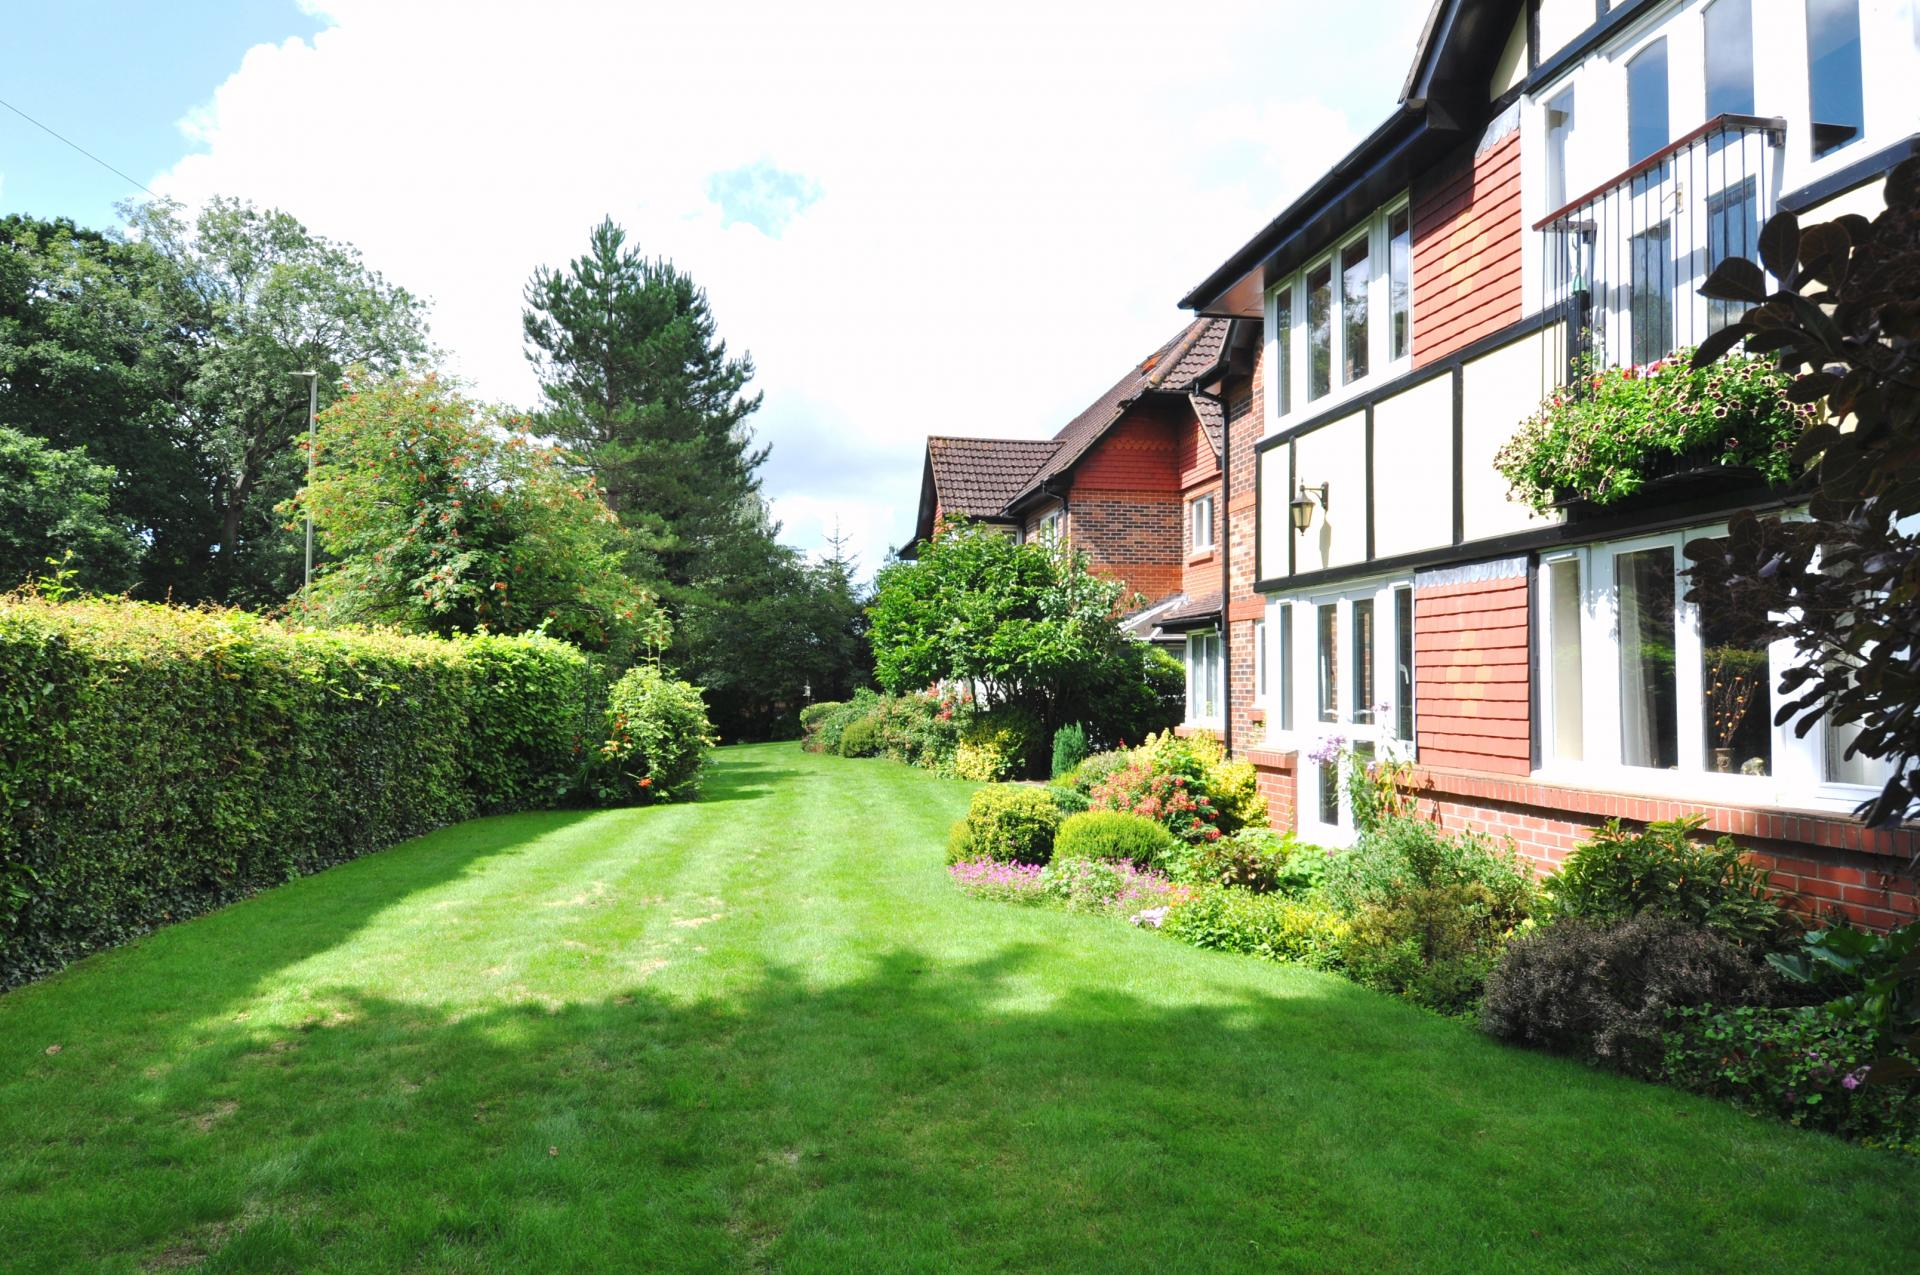 3 Bedrooms Studio Flat for sale in Southampton